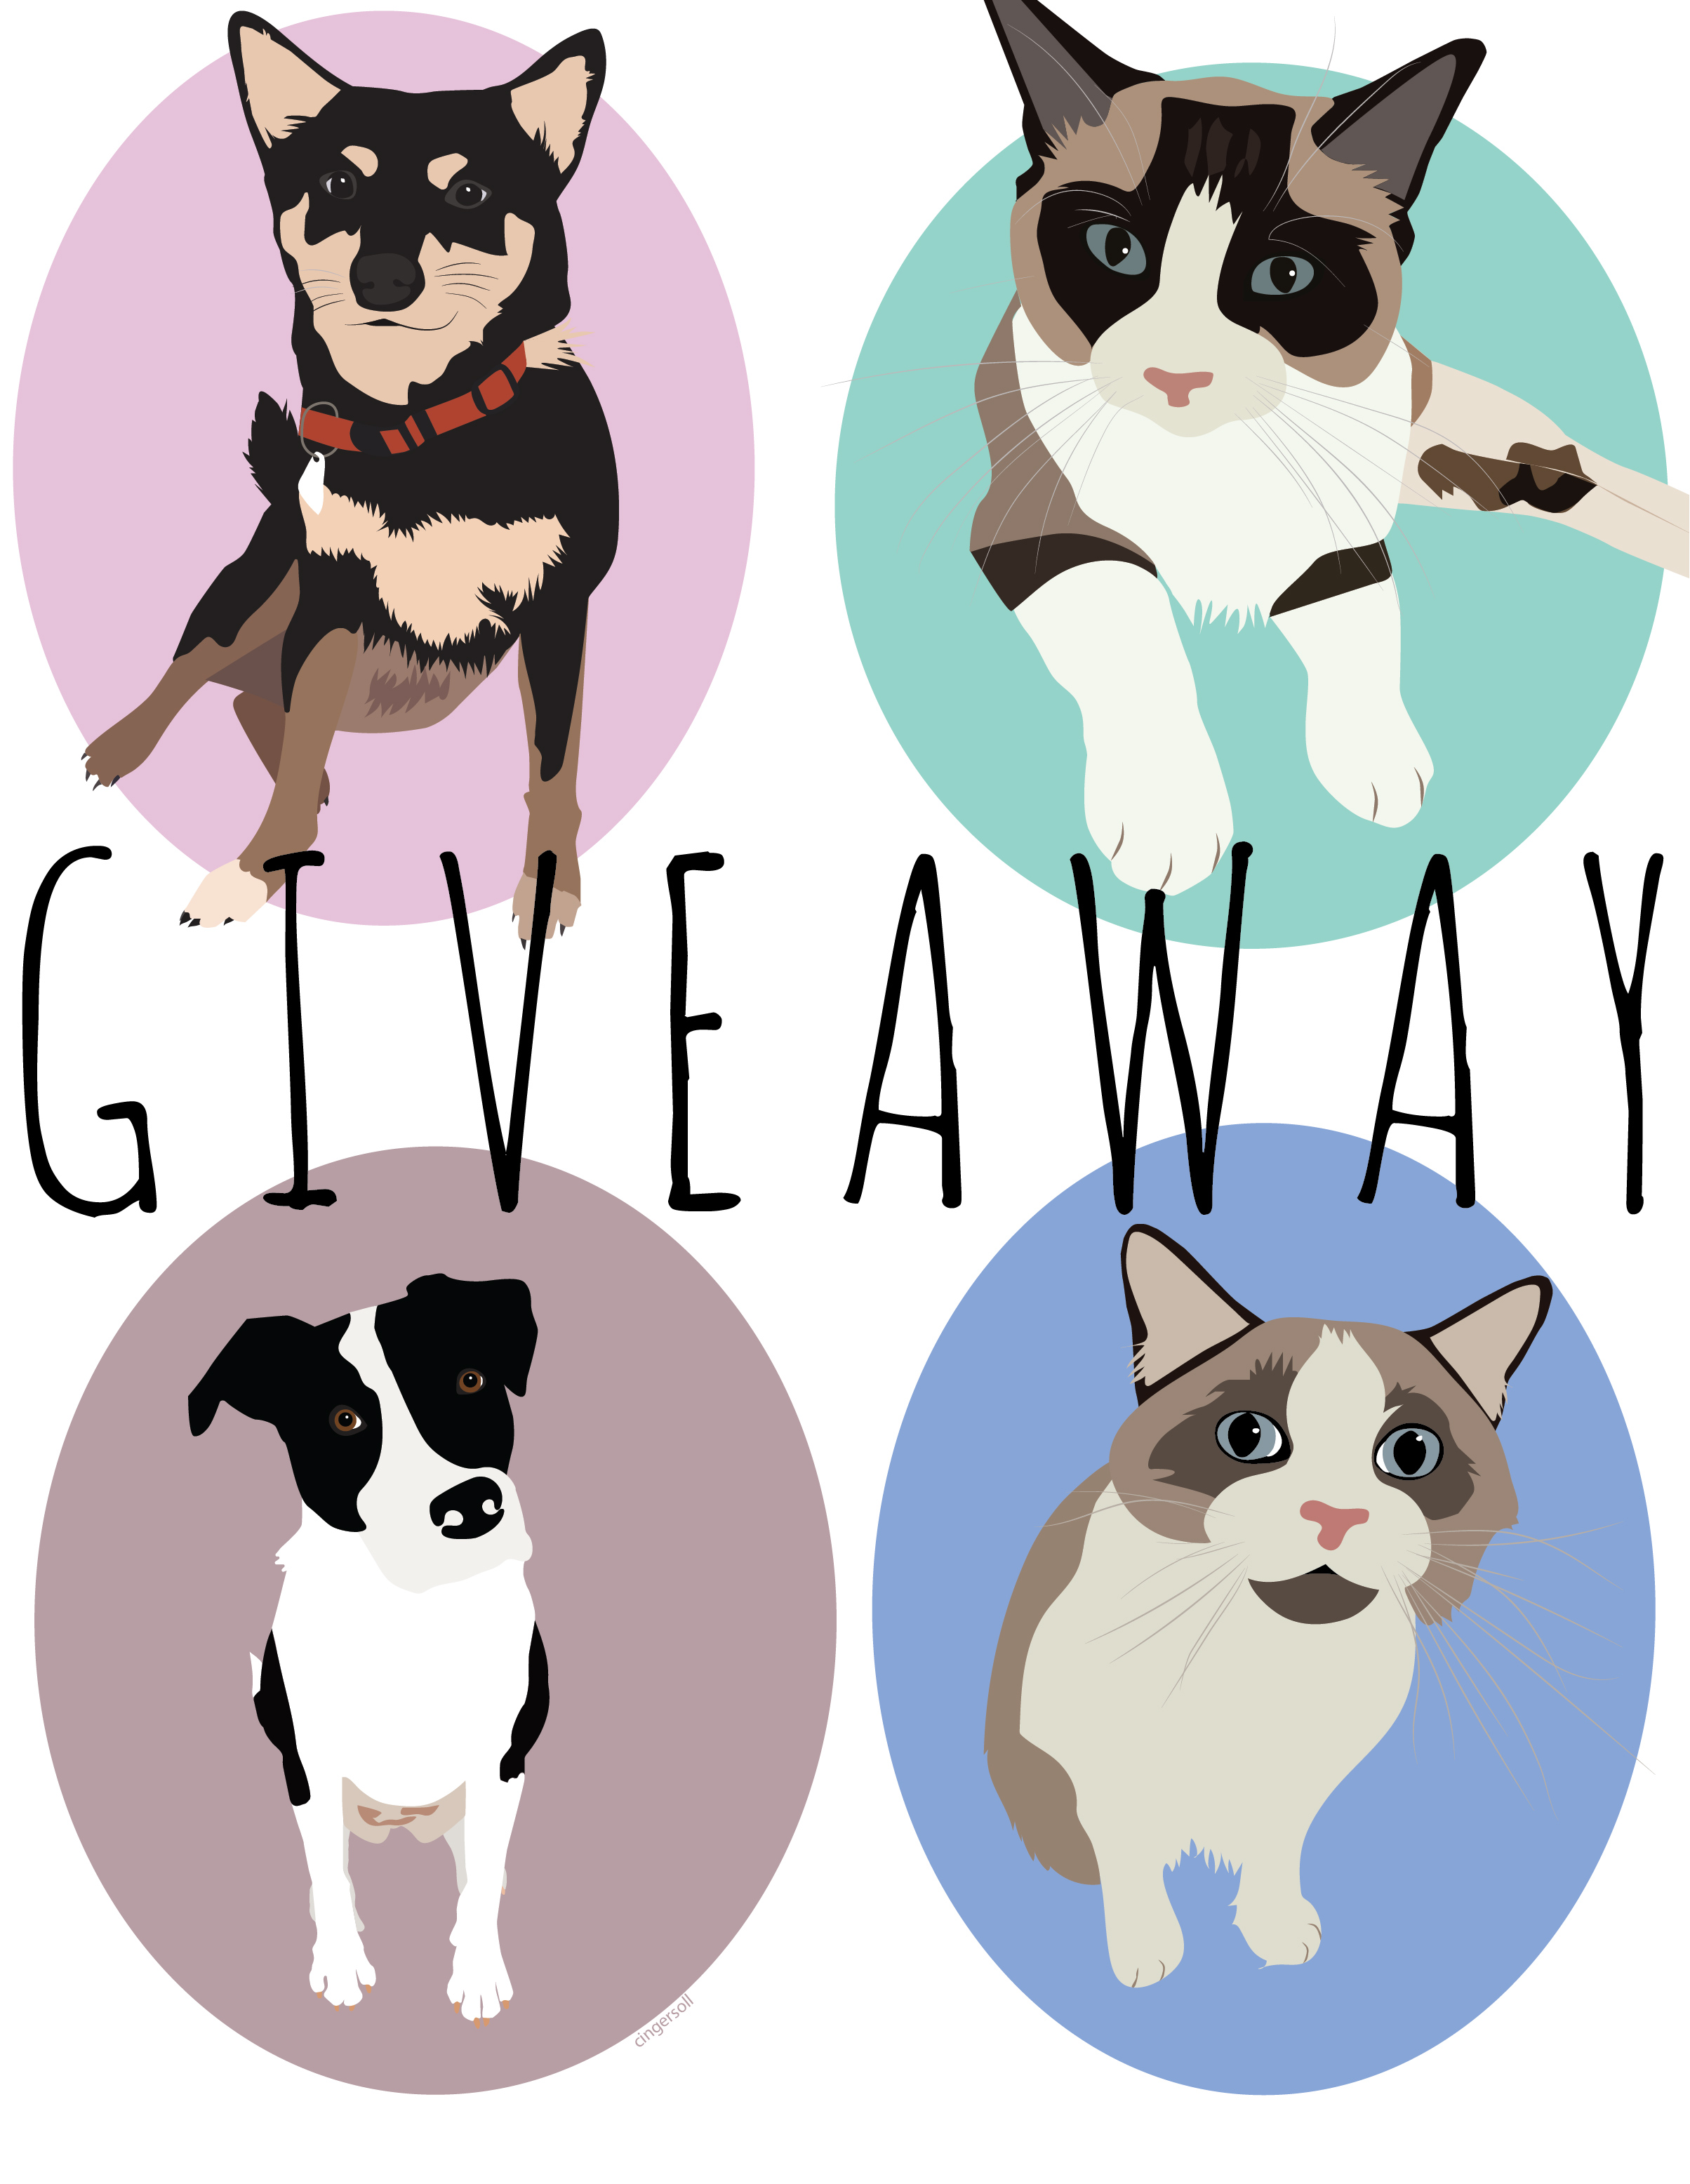 My website officially turns ONE on Friday and I'm celebrating by having my first GIVEAWAY! One  lucky person will win a personalized 8x10 pet portrait! TO ENTER: You must follow my IG account (@carleebird) + TAG A FRIEND in the comment section of the post! One entry per person! The giveaway will close on Saturday, June 2nd @ 10PM EST. The winner will be chosen at random and contacted through DM's on Sunday, June 3rd! -